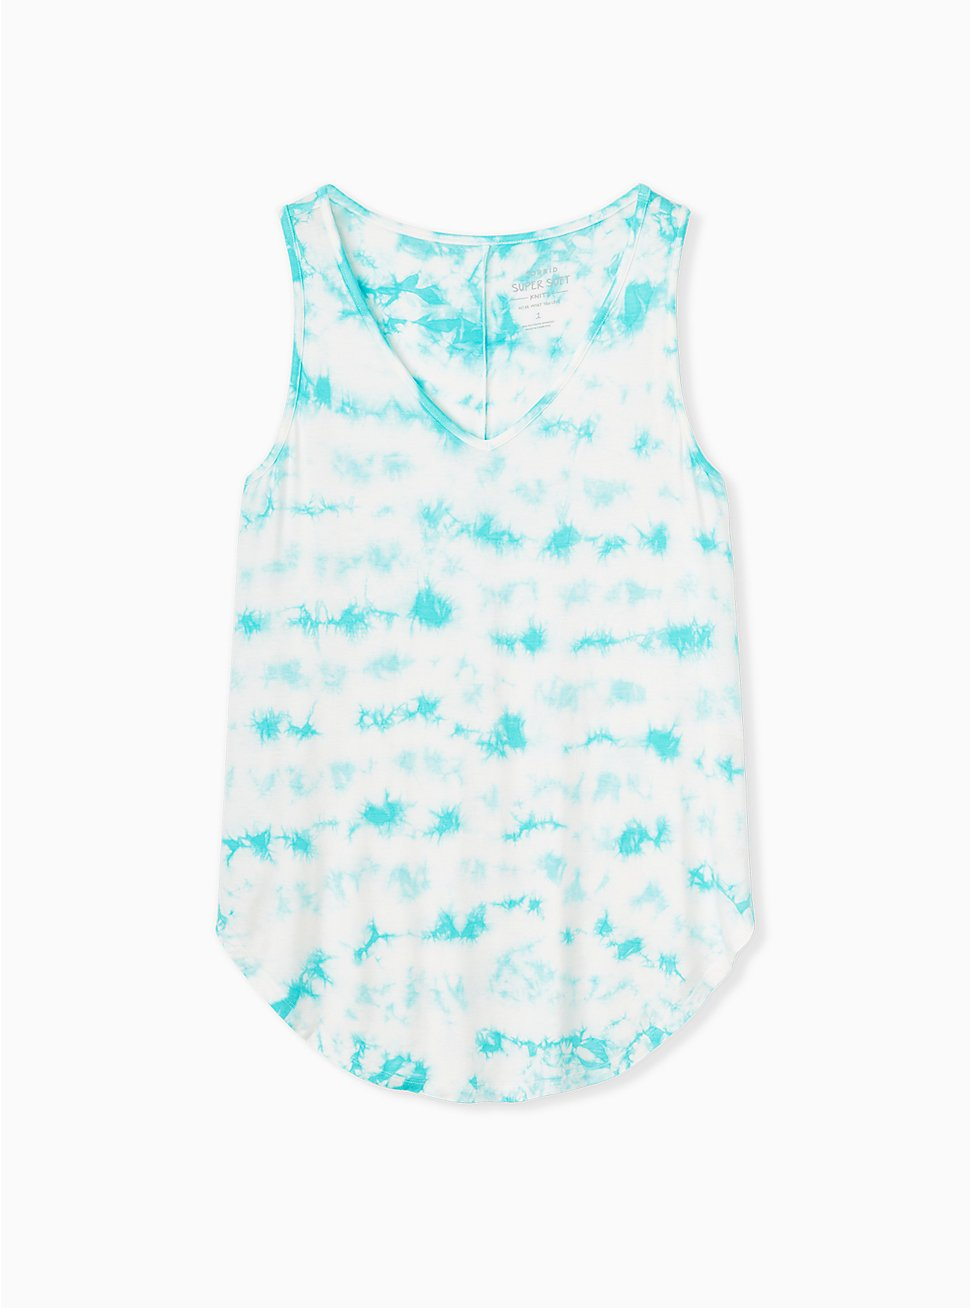 Super Soft Turquoise Tie-Dye Favorite Tunic Tank , OTHER PRINTS, hi-res